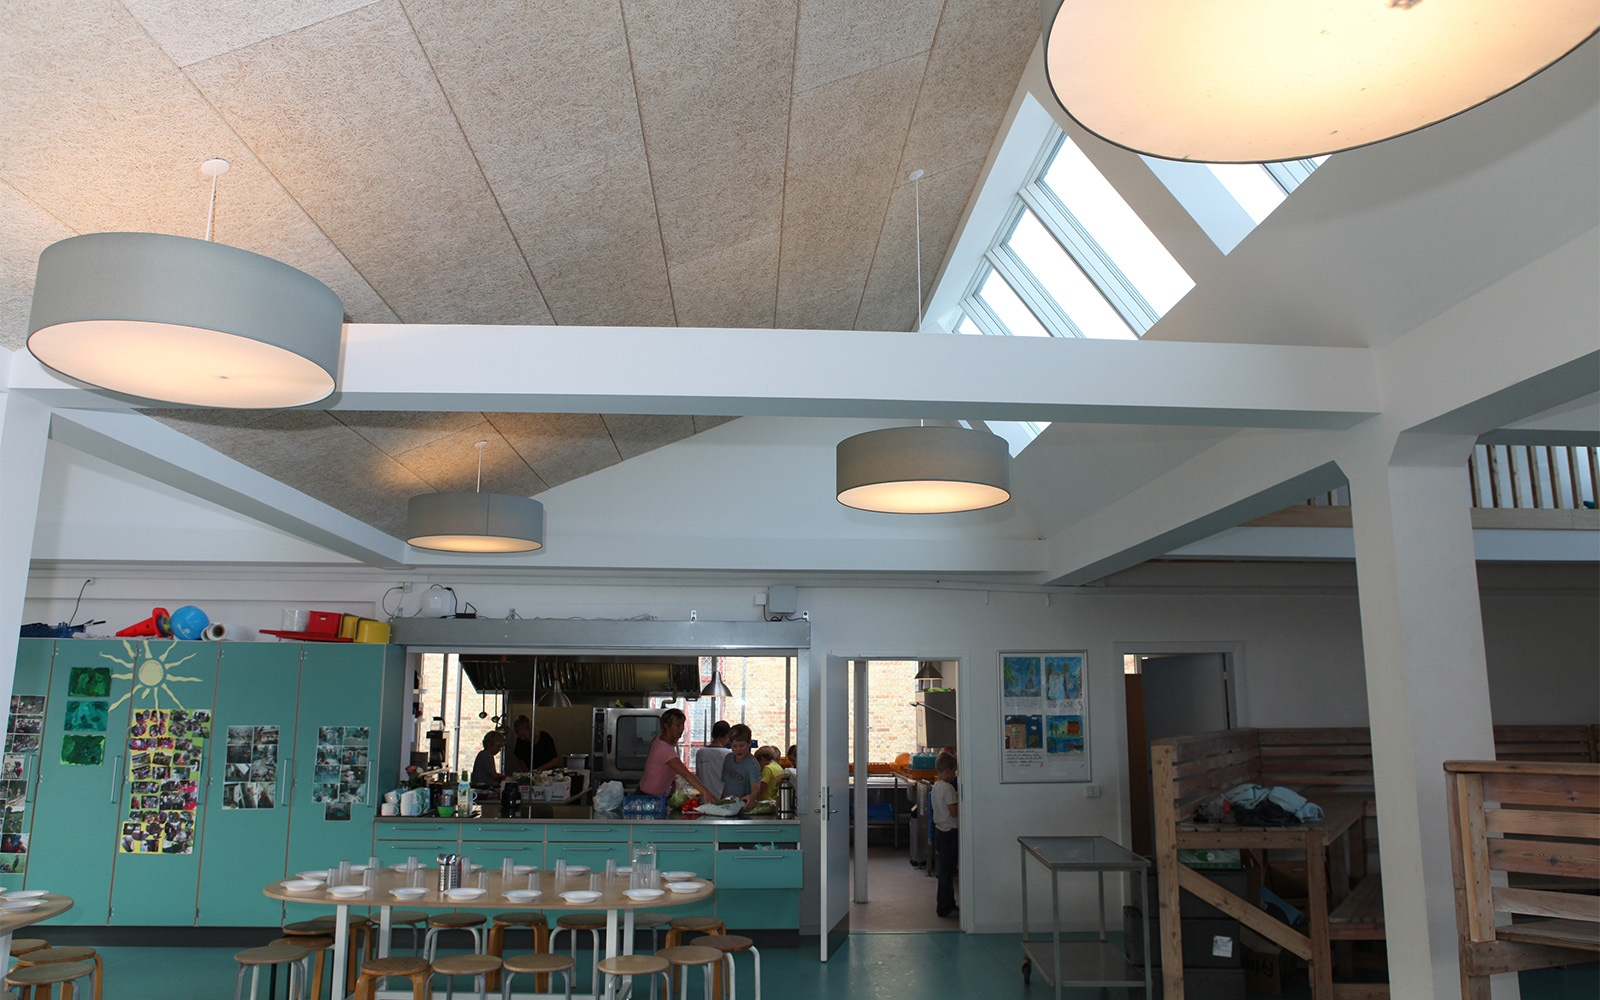 Remodeled school with artificial and natural lighting from skylights